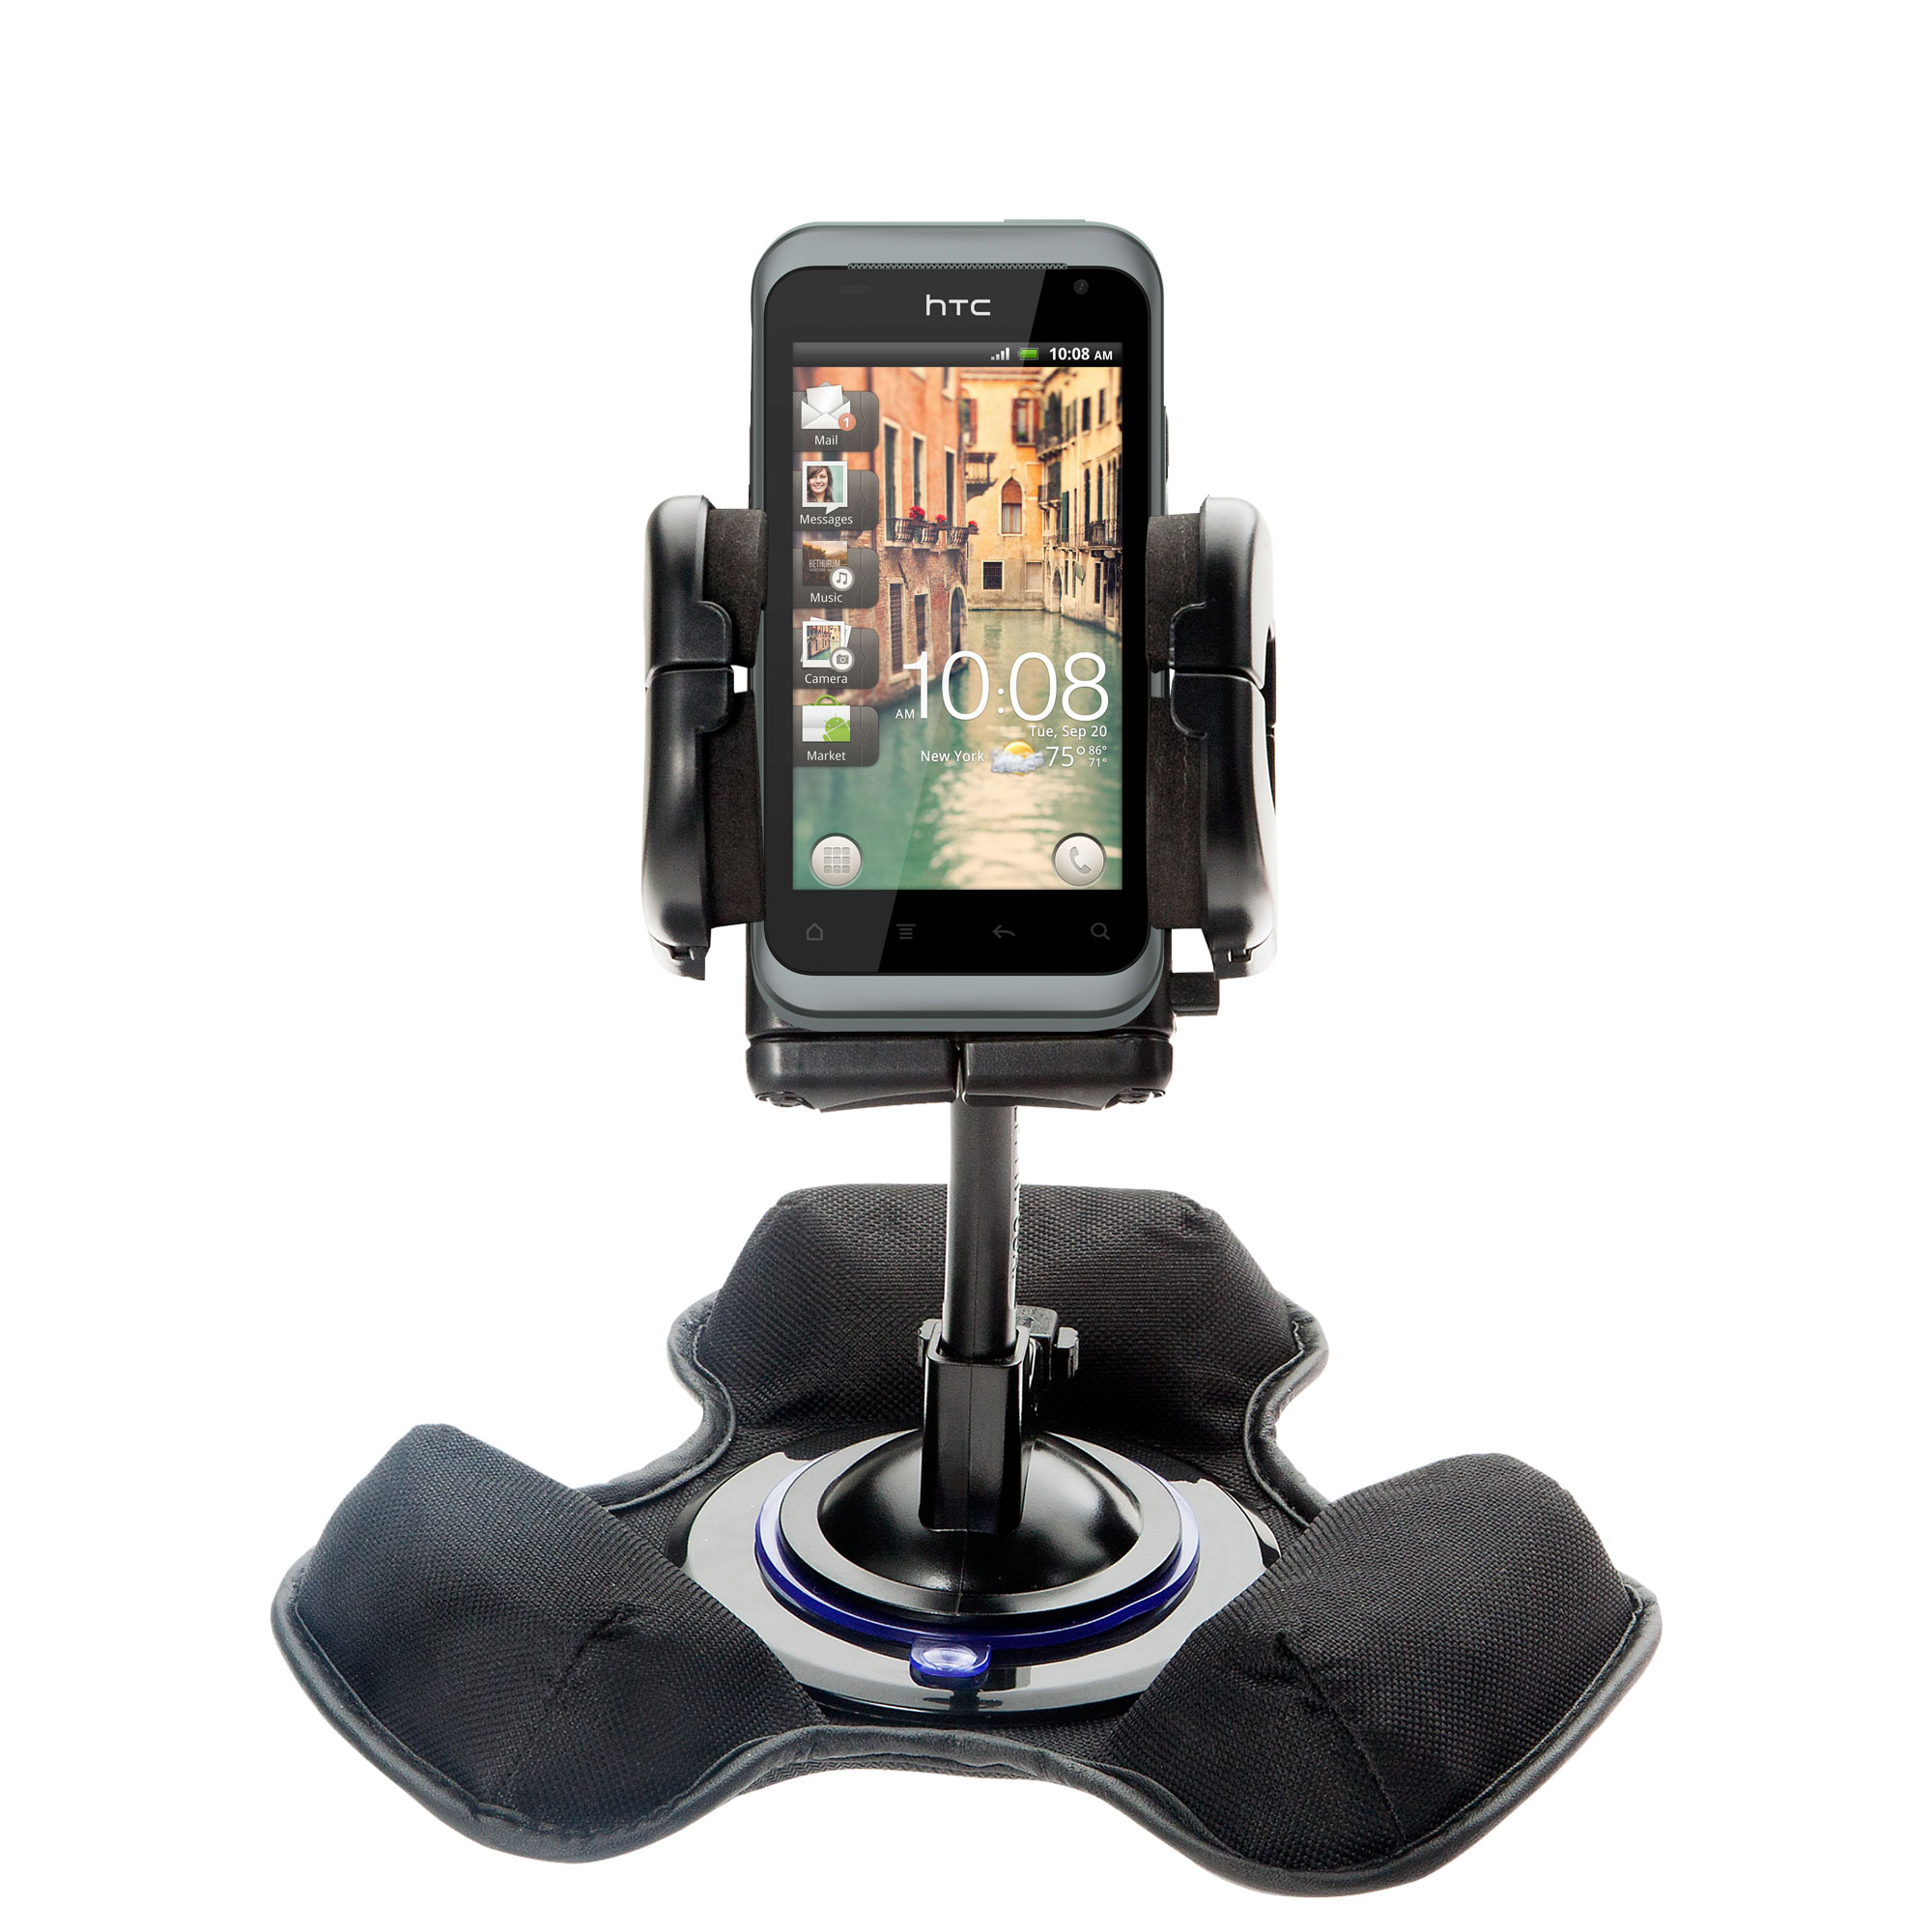 Dash and Windshield Holder compatible with the HTC Rhyme